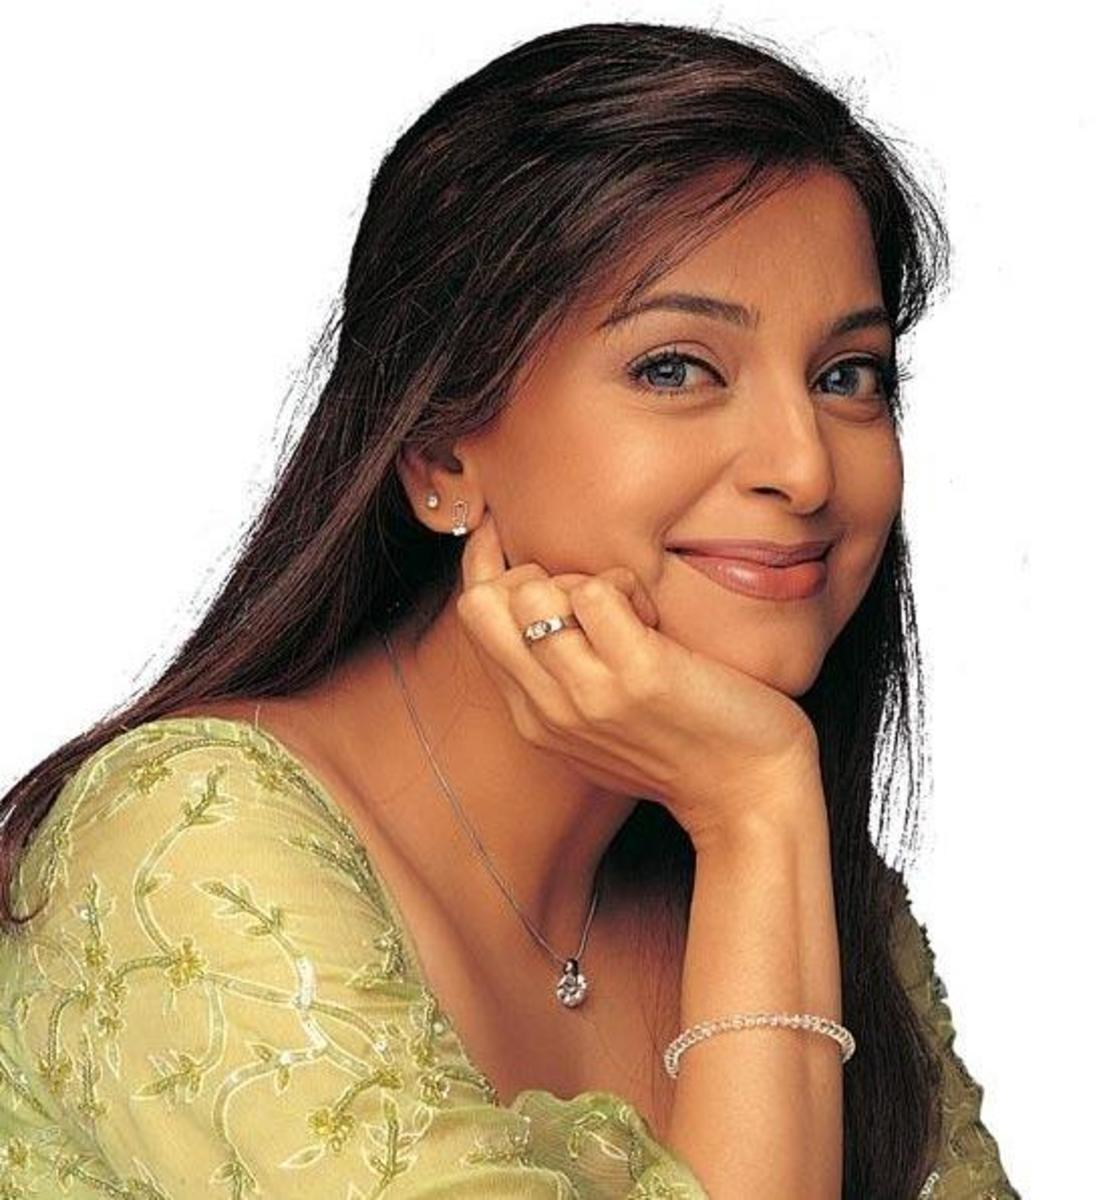 Top 10 Best Juhi Chawla Movies